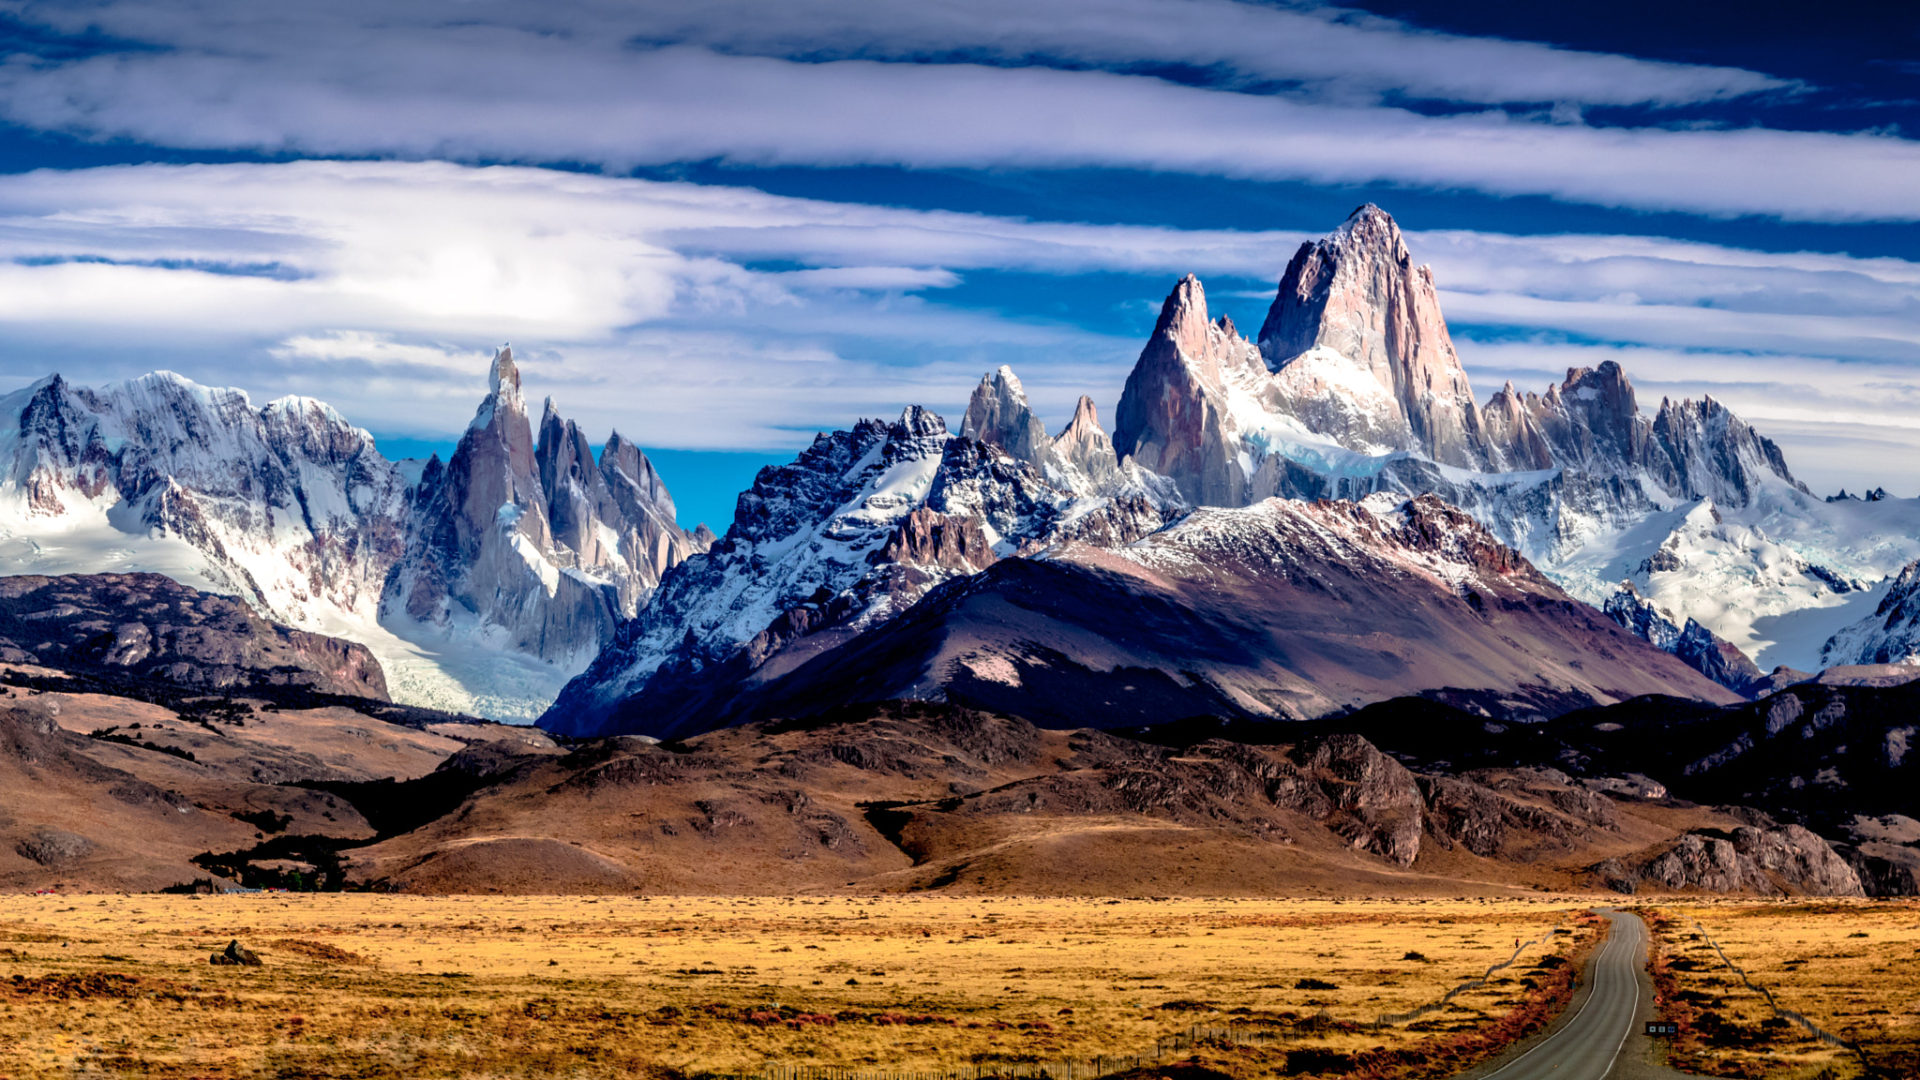 Dota 2 Wallpaper Hd For Pc Patagonic Los Glaciares National Park Argentina South